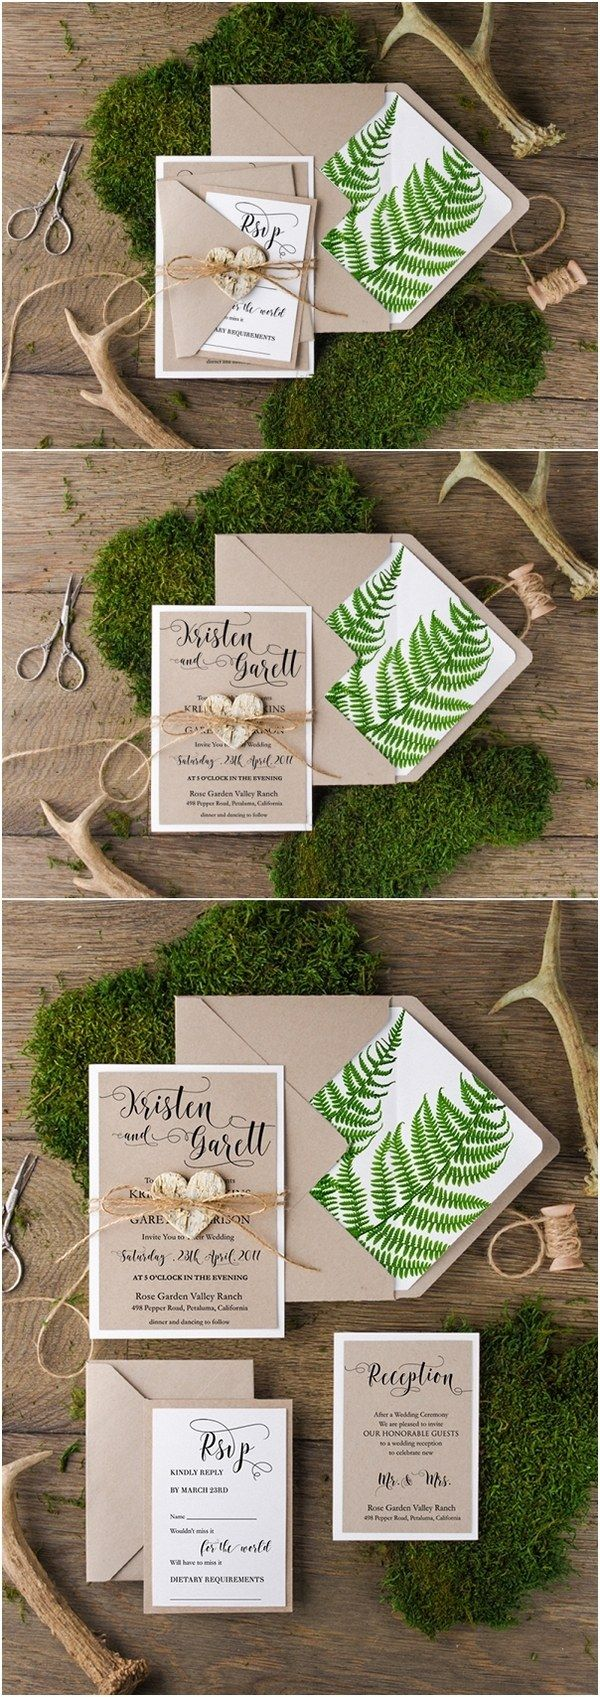 Rustic country botanical green wedding invitations | Deer Pearl Flowers